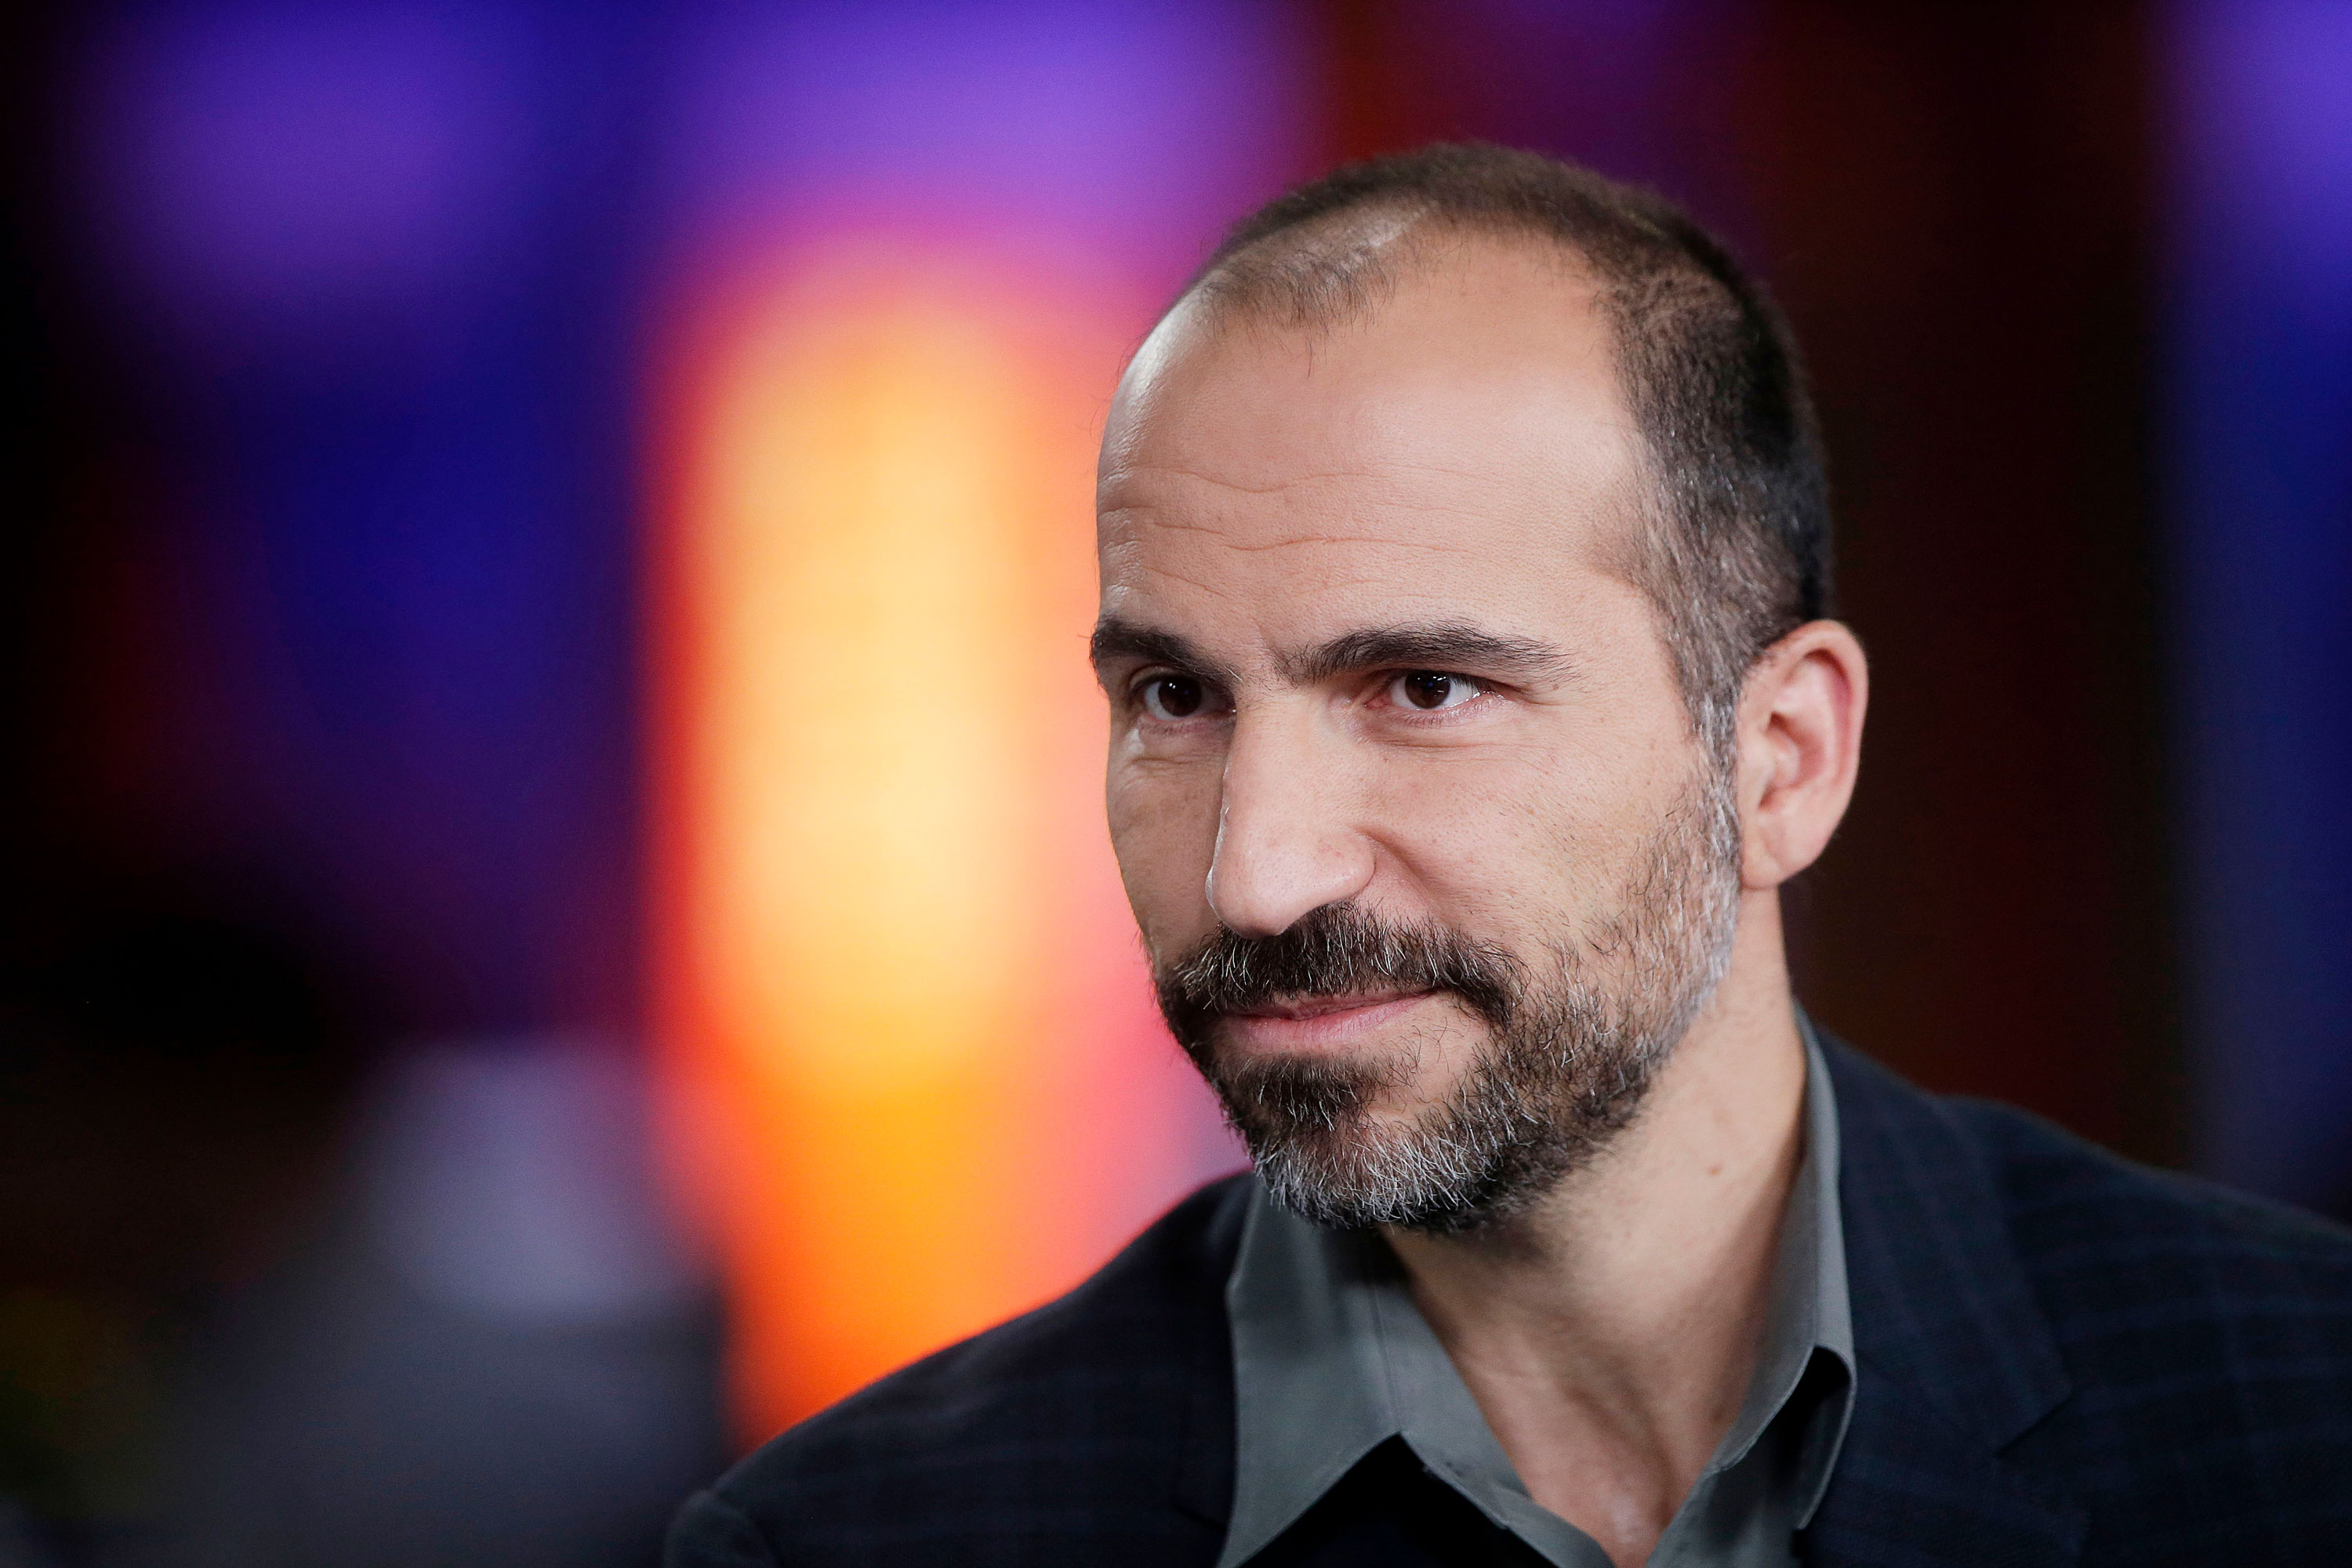 Expedia CEO Dara Khosrowshahi says he's taking the Uber CEO position